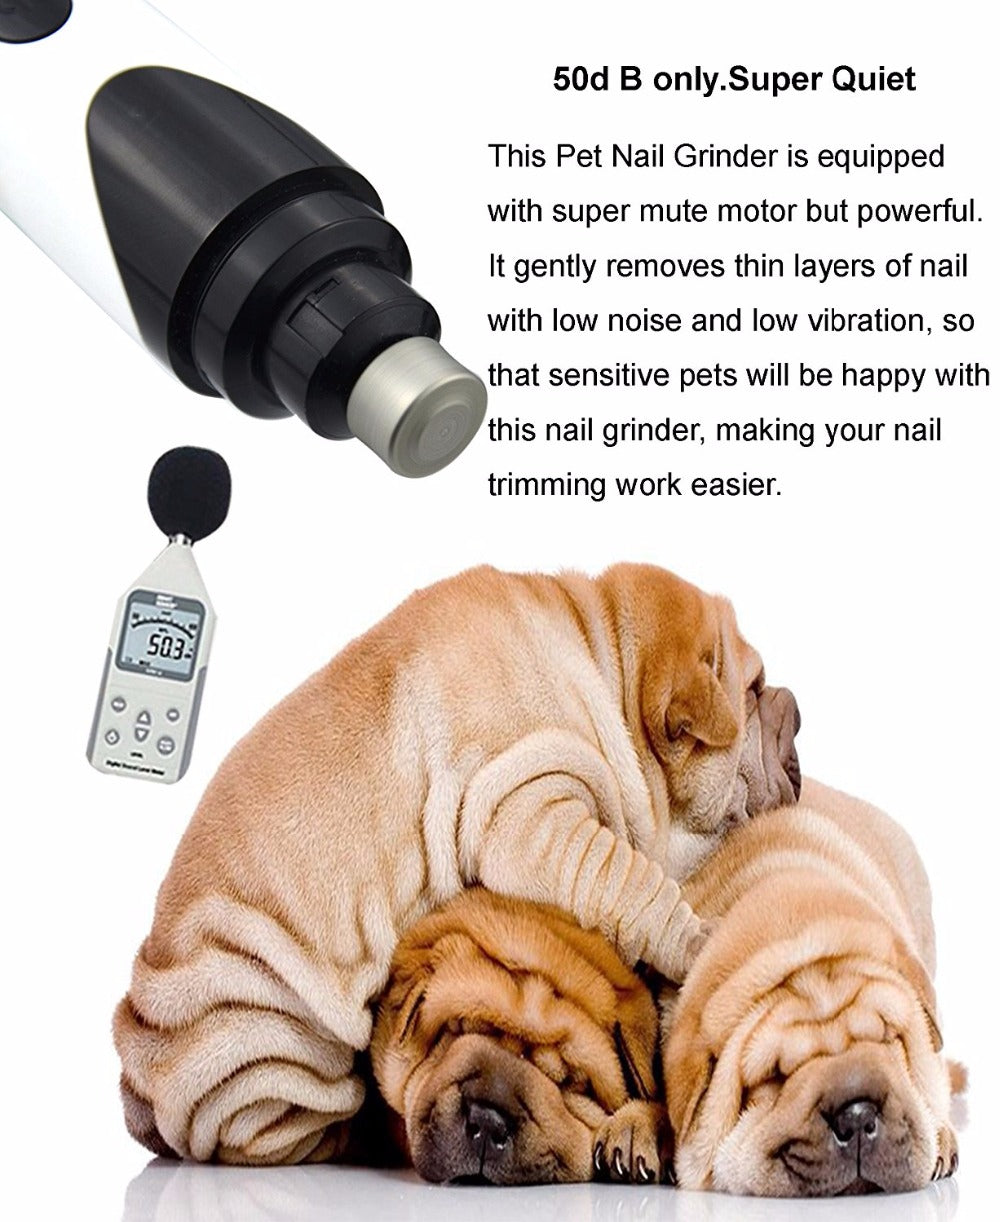 Rechargeable  Pets Nail grinder, with USB charging, super quiet working for Dogs cats paws nail grooming and trimming